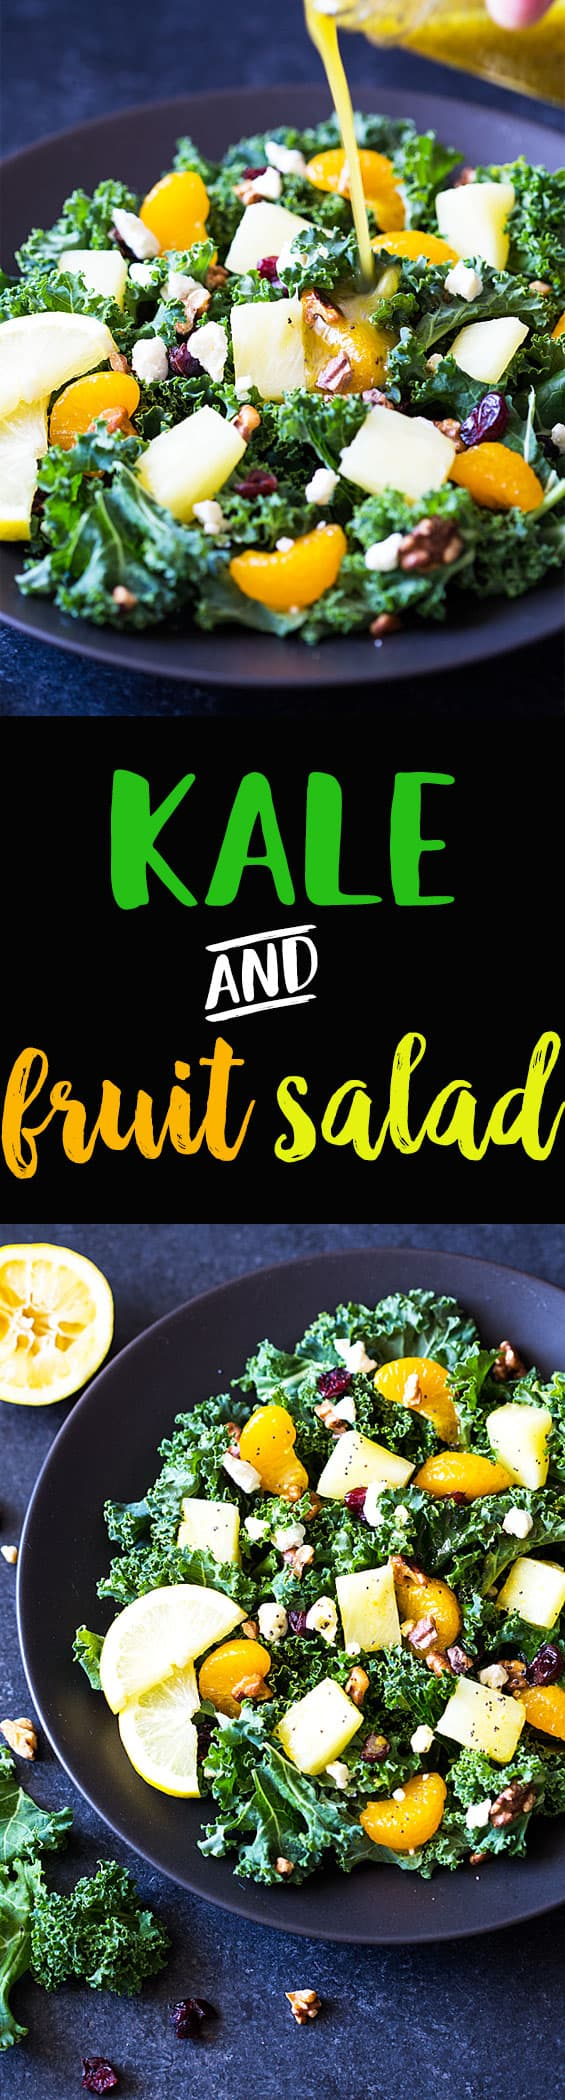 Two images of a salad.  Text in center says kale and fruit salad.